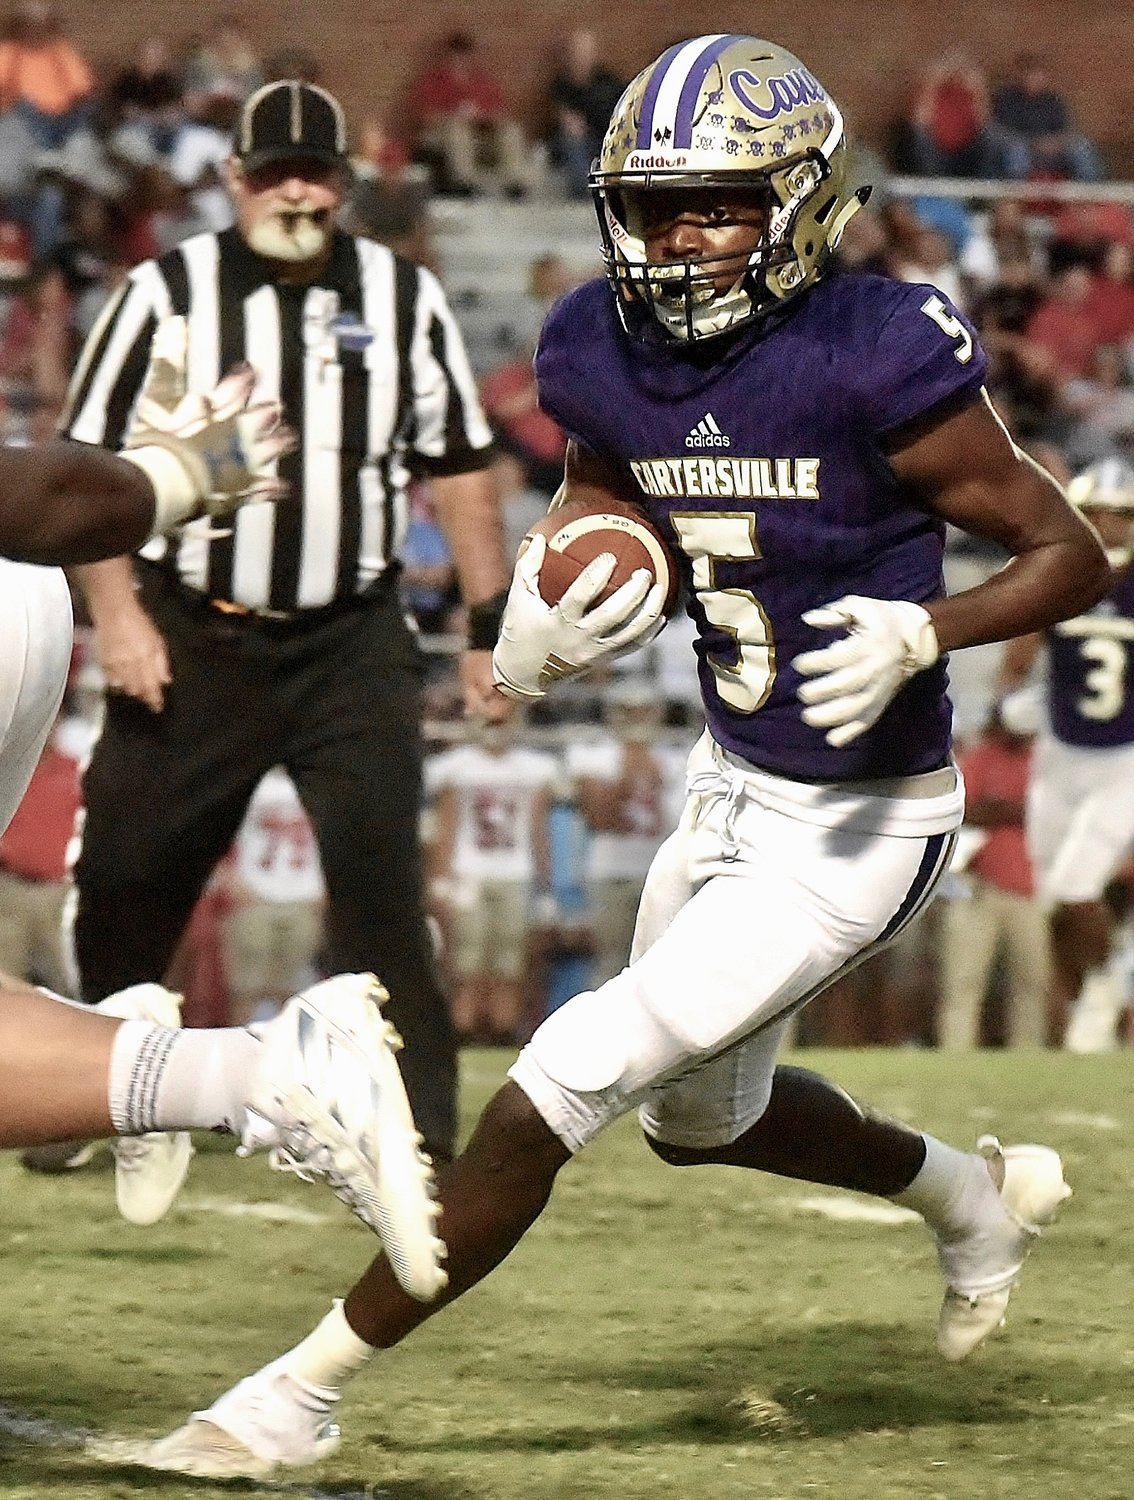 Cartersville junior Devonte Ross runs with the ball during a game against Cedartown on Sept. 27 at Weinman Stadium. The Canes will go on the road Friday to take on LaGrange.